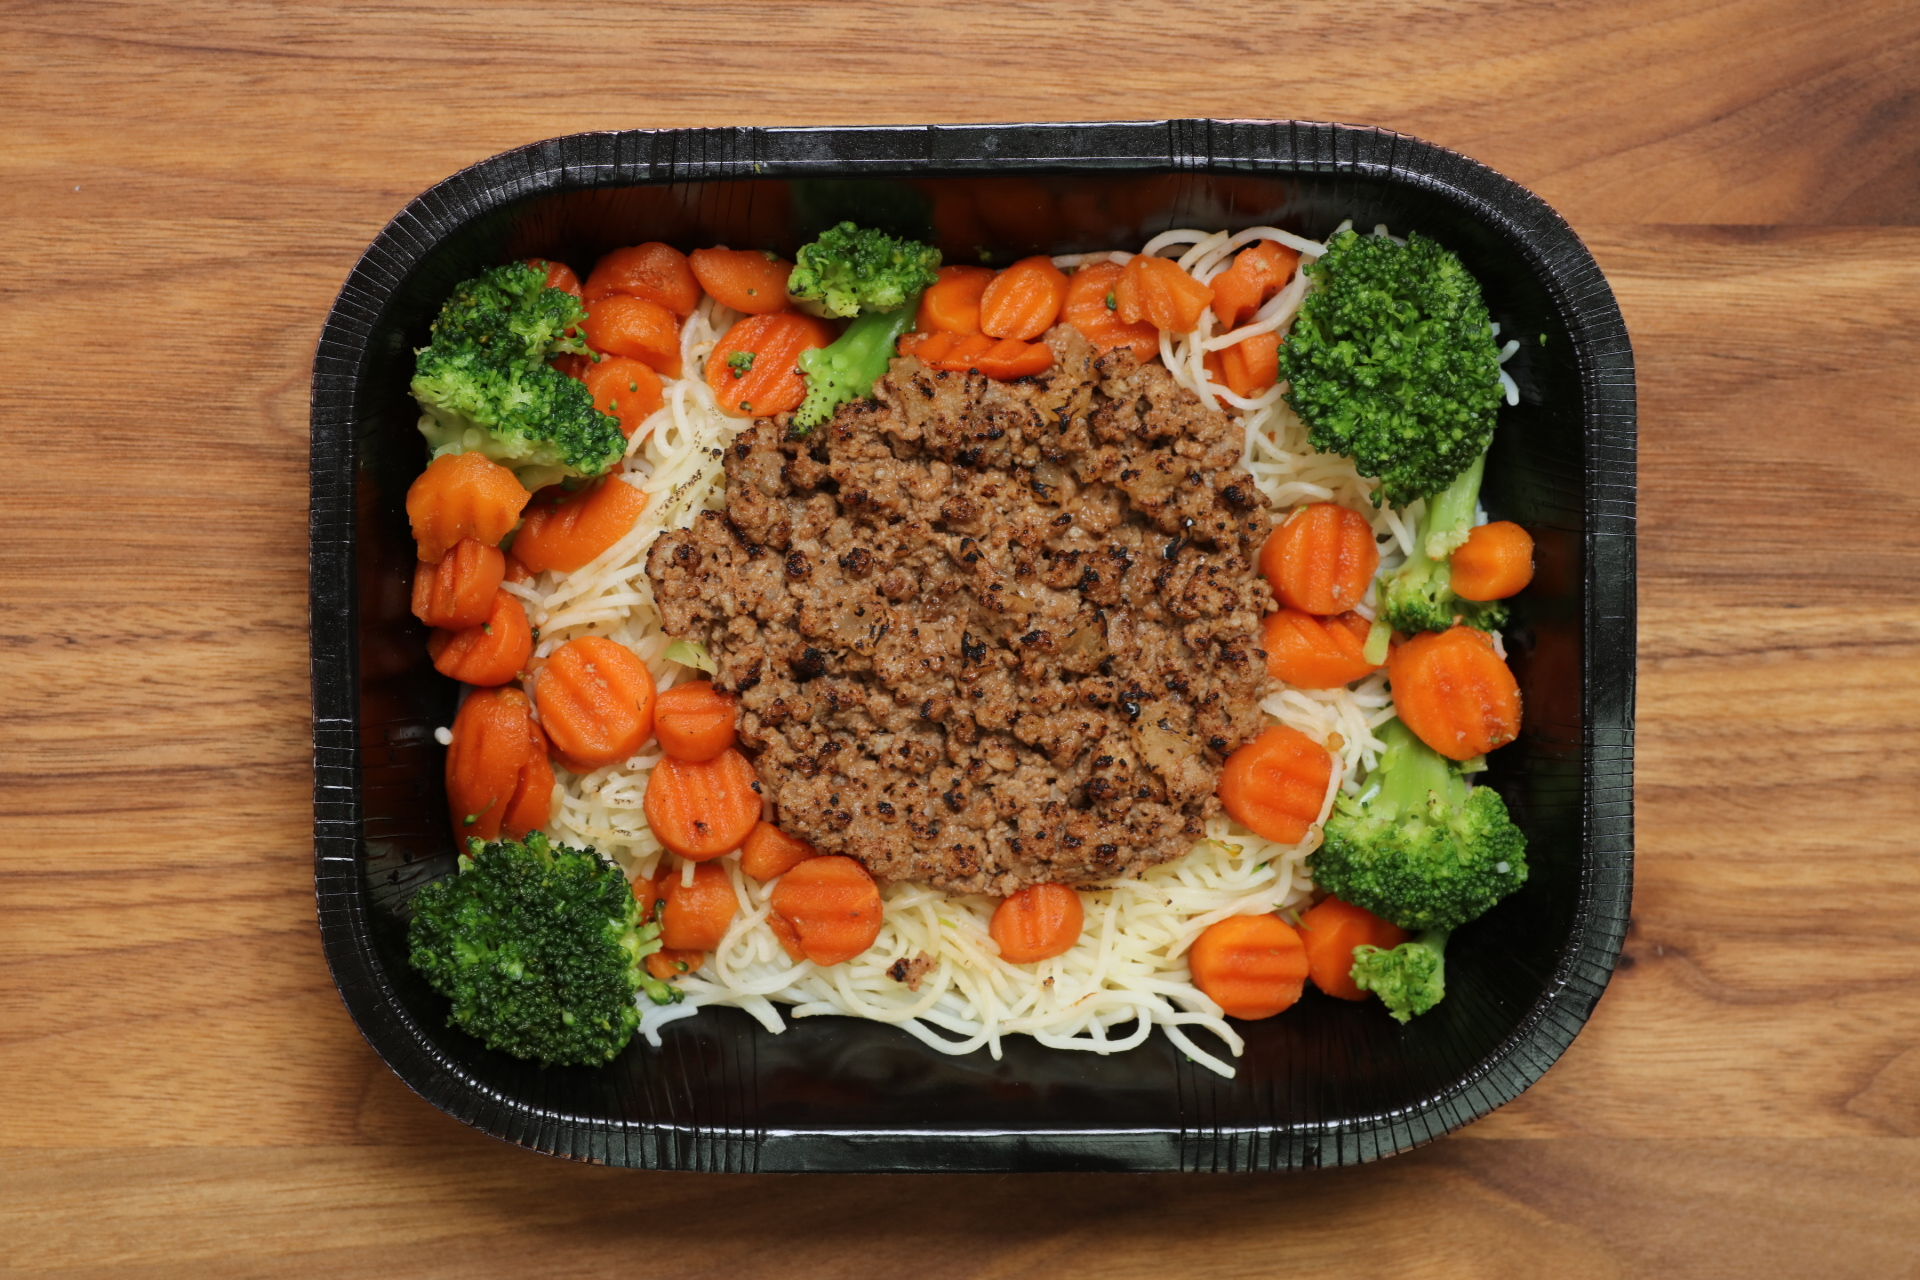 SAUTEED BEEF AND BROCOLI